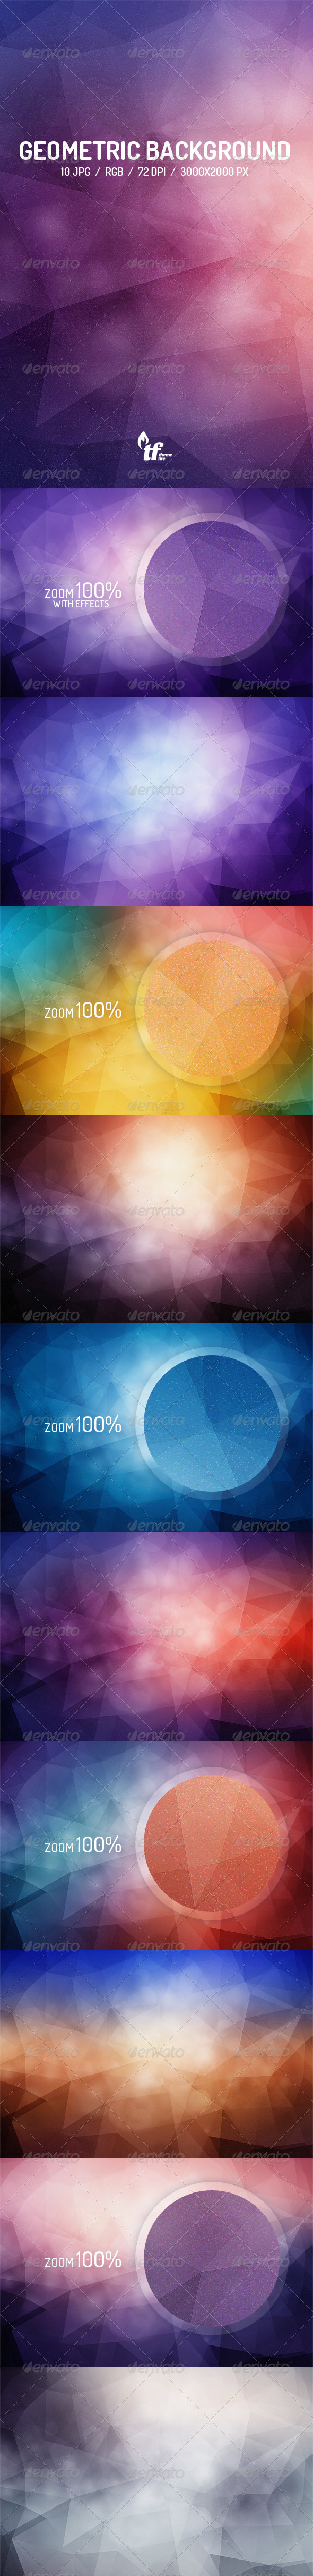 GraphicRiver 10 Abstract Geo Backgrounds 8739241